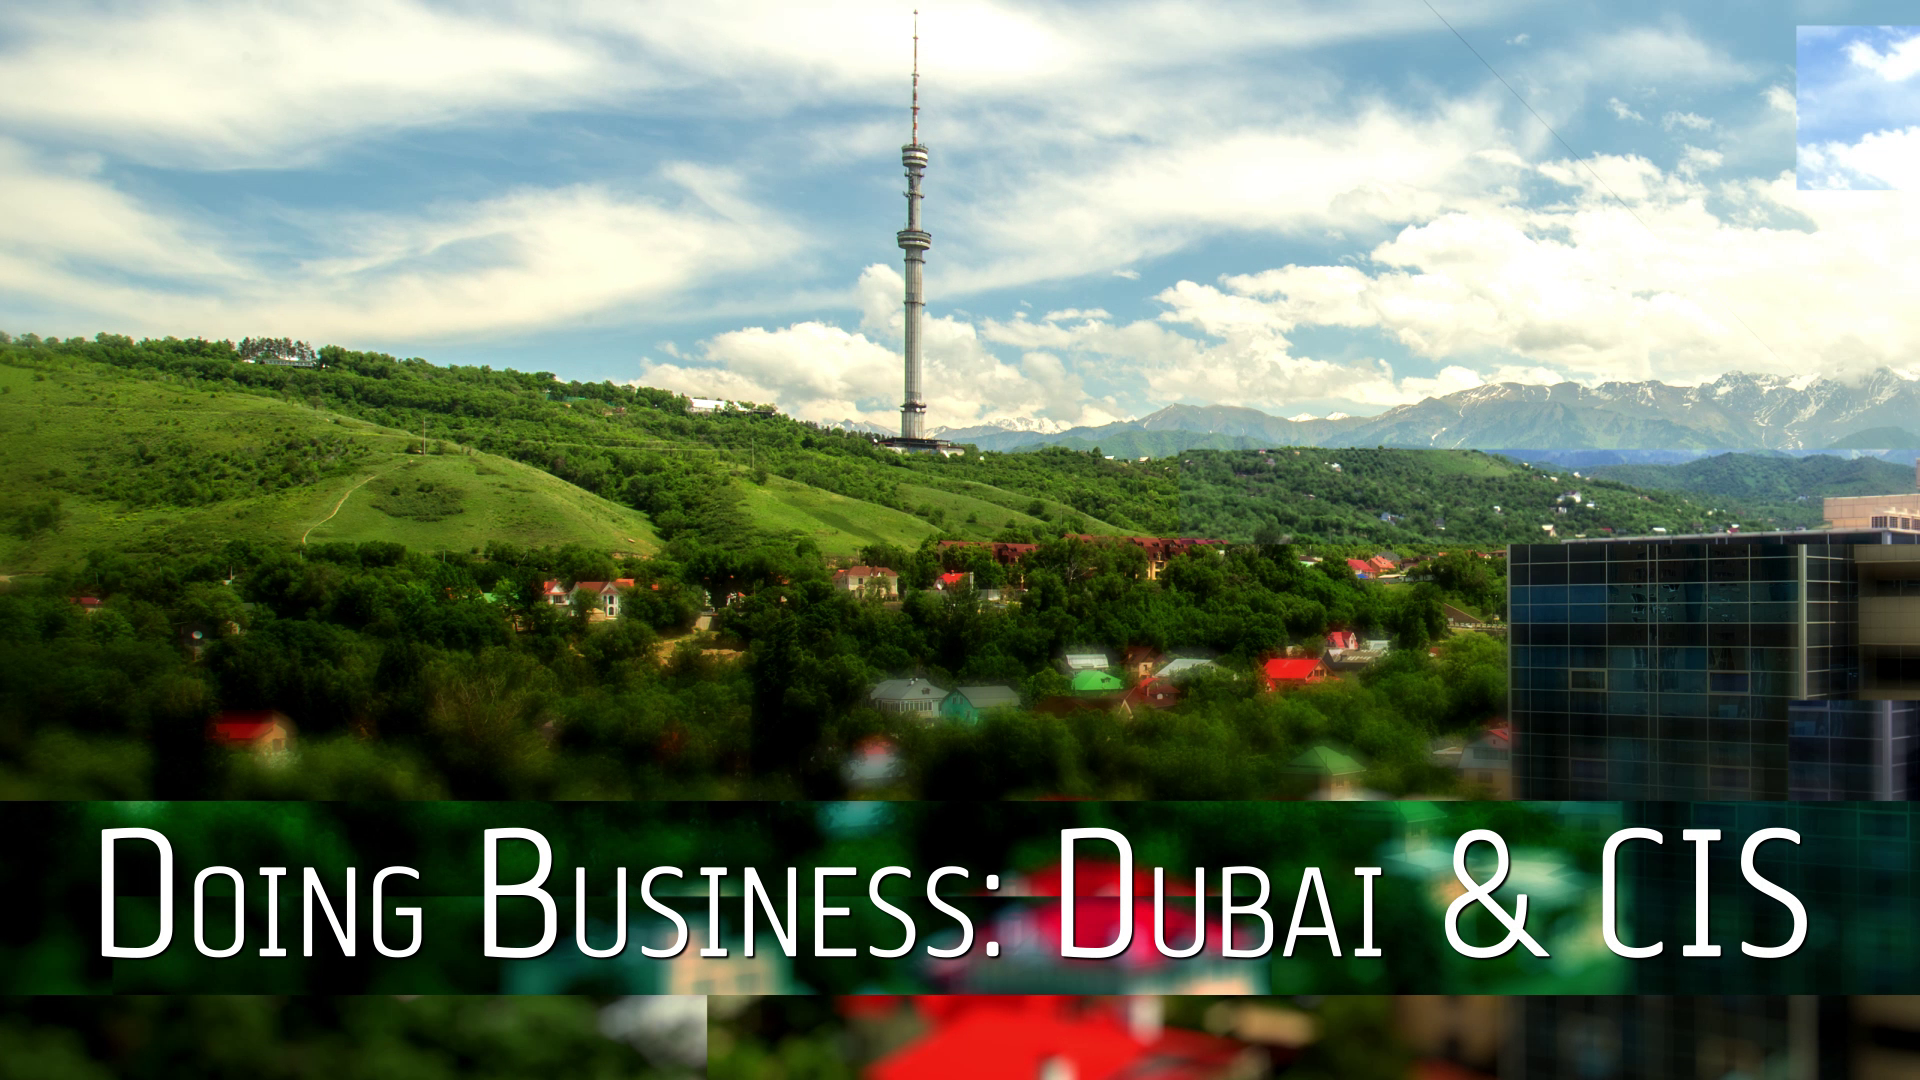 Dubai Chamber hosting CIS Global Business Forum to expand business and trade with CIS countries